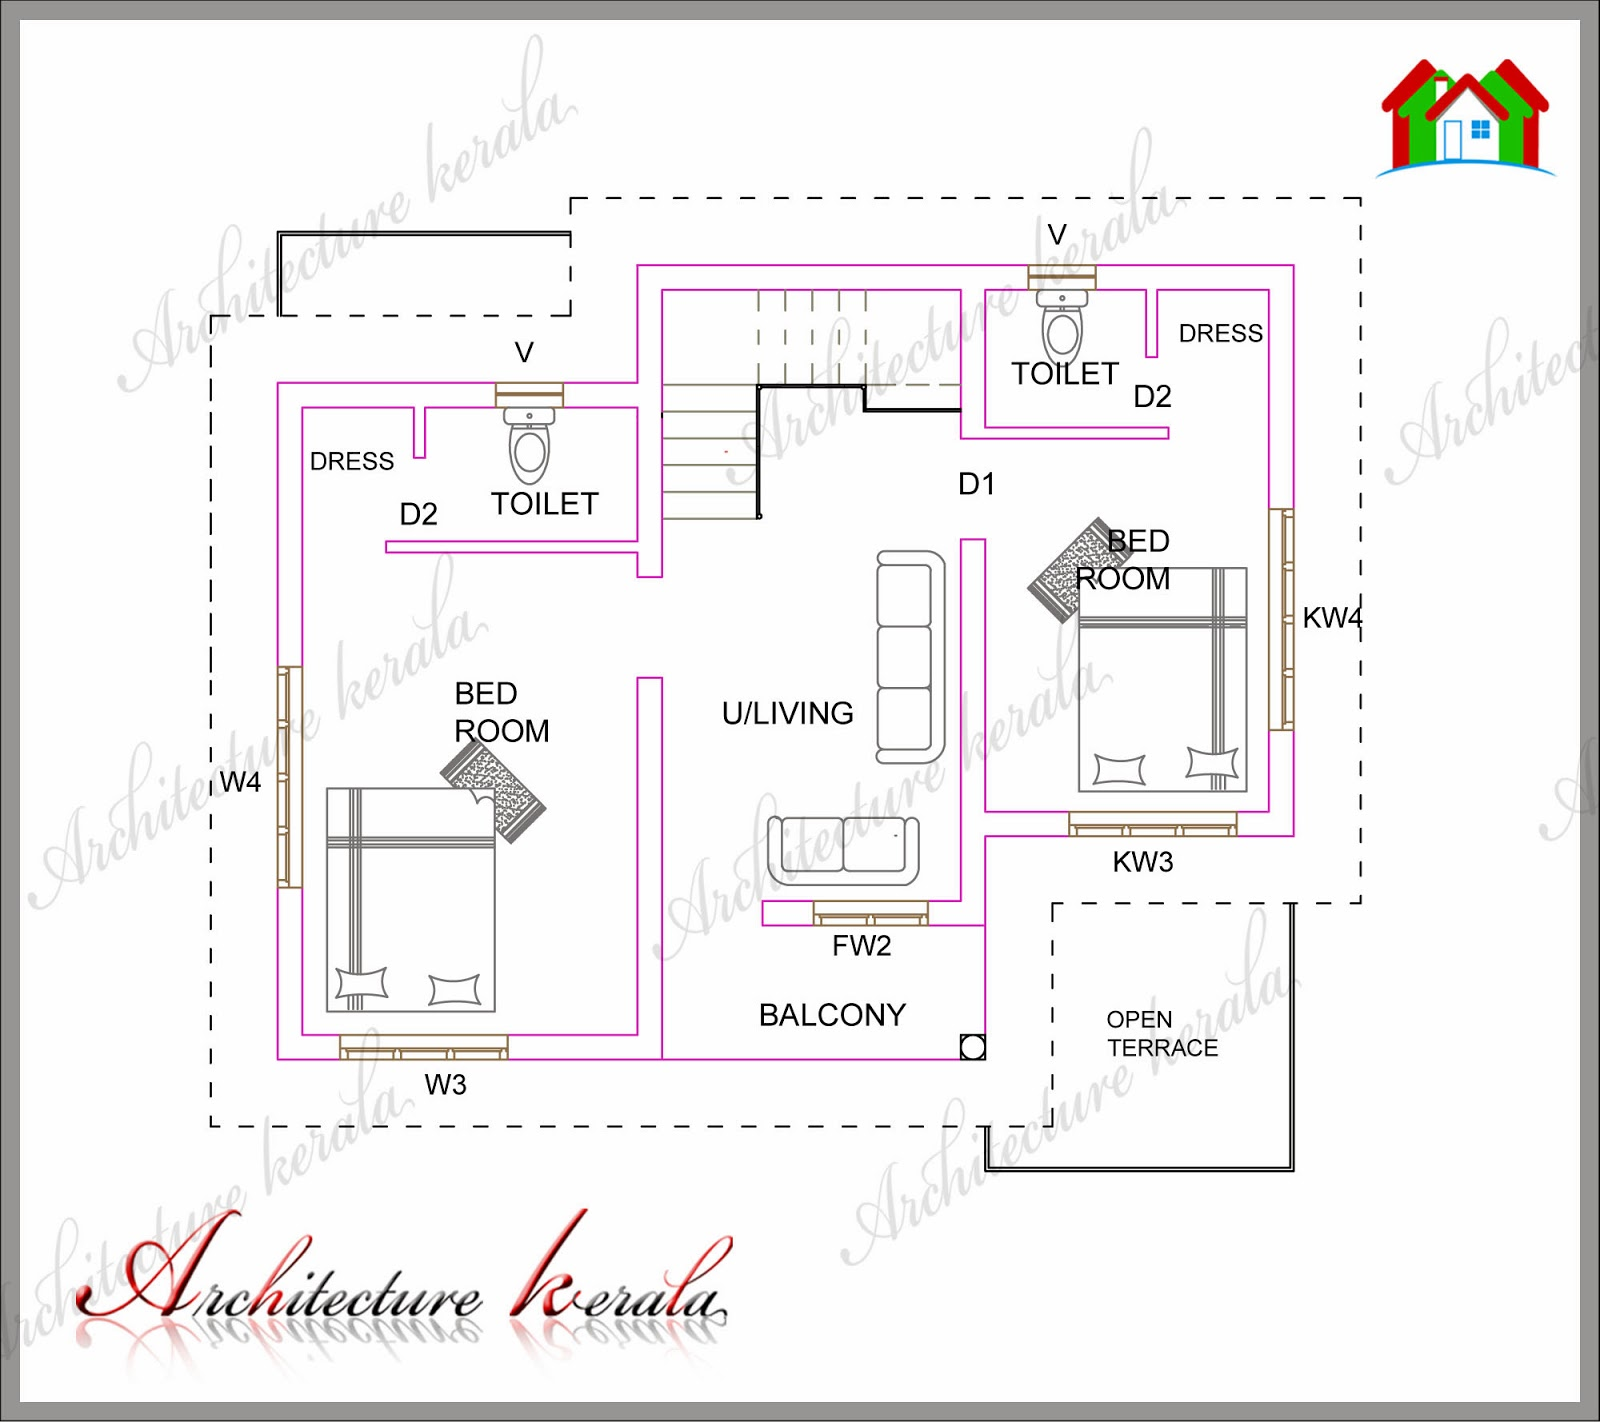 House Plans Kerala Style 1000 Square Feet And. 800 Sq Ft House Plans 3 Bedroom Kerala Style   Bedroom Style Ideas